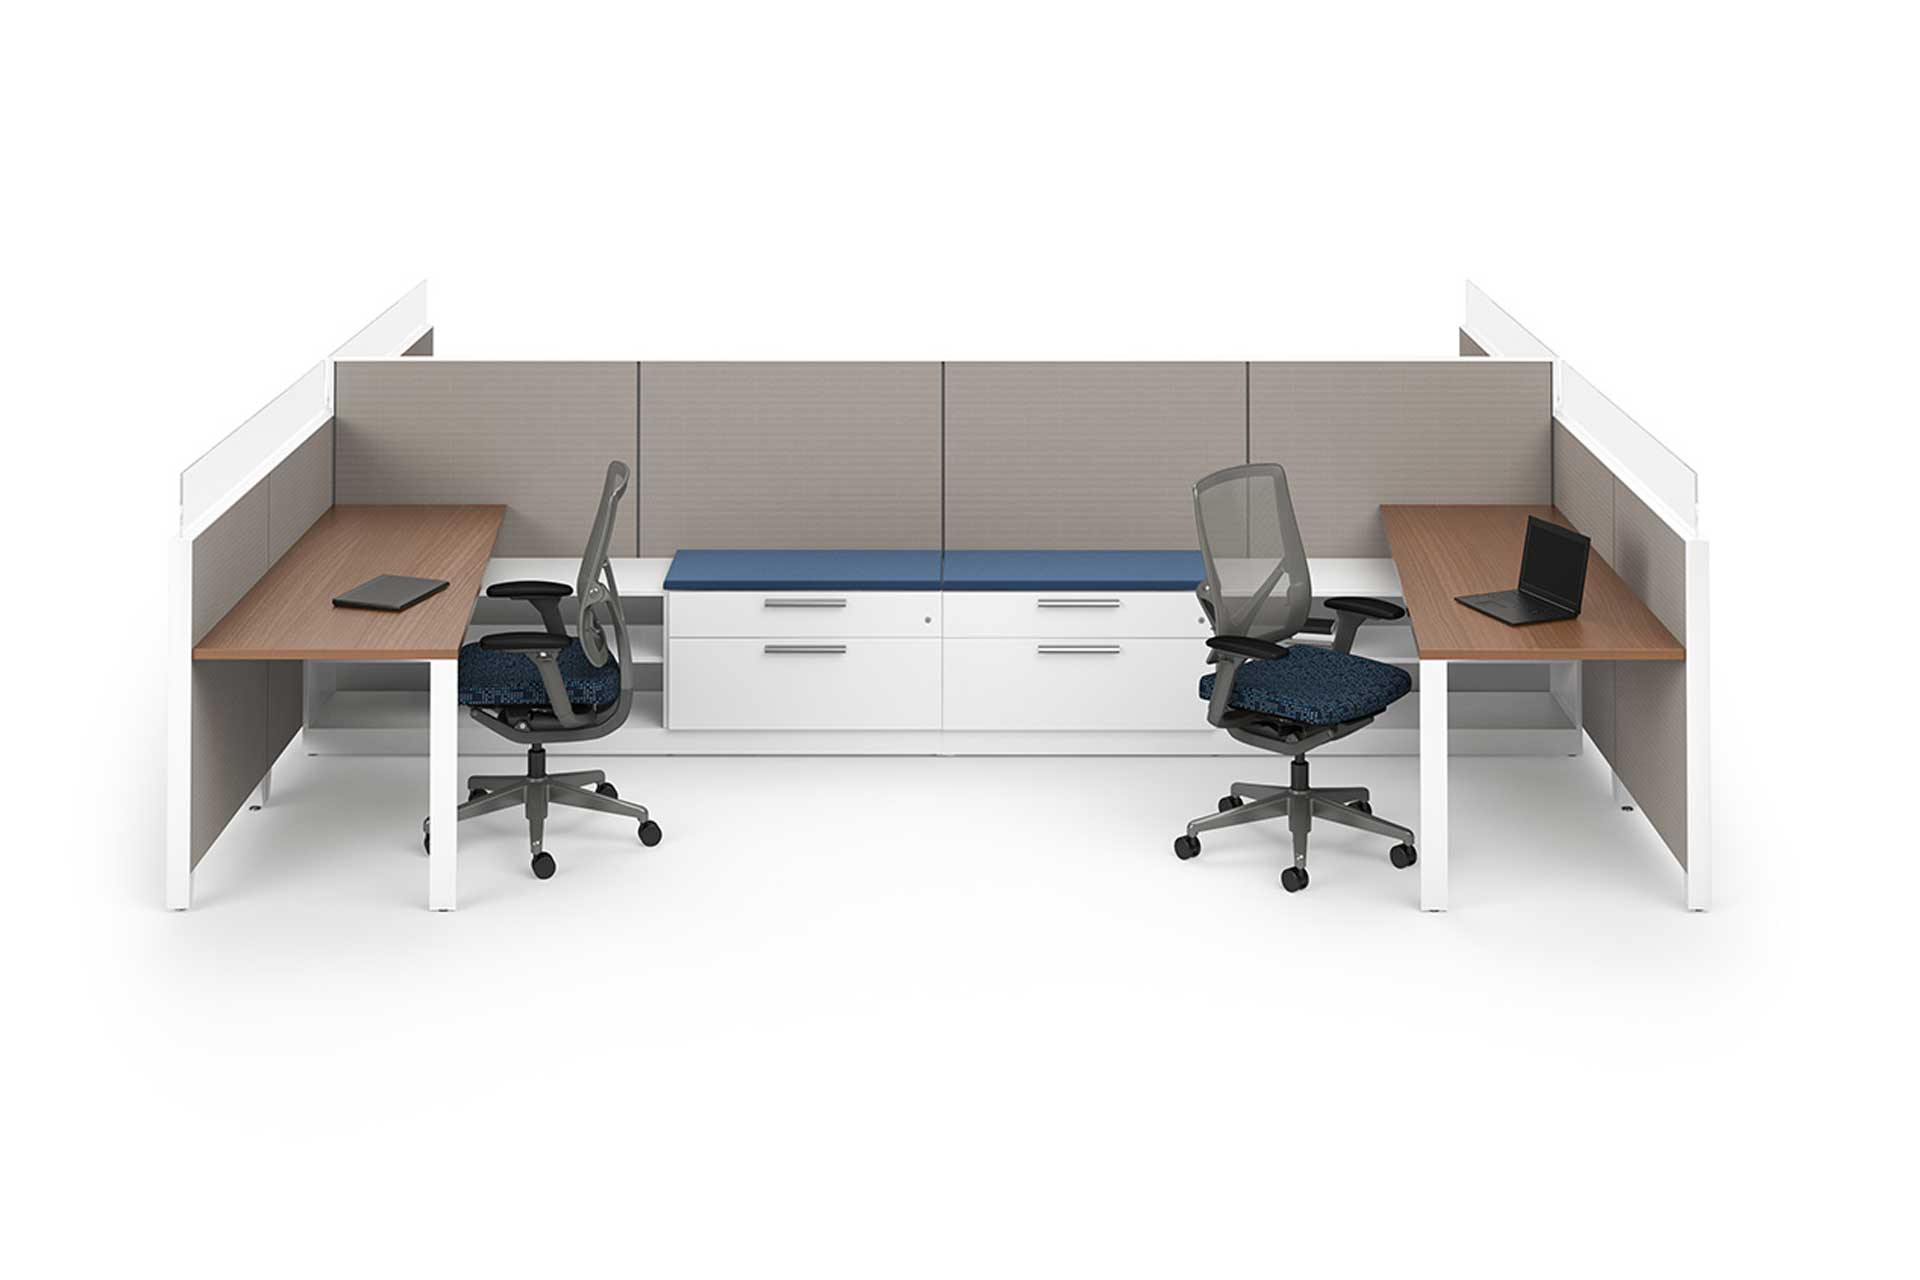 Two office desks back to back with two swivel chairs, desks, cabinets, and dividing walls